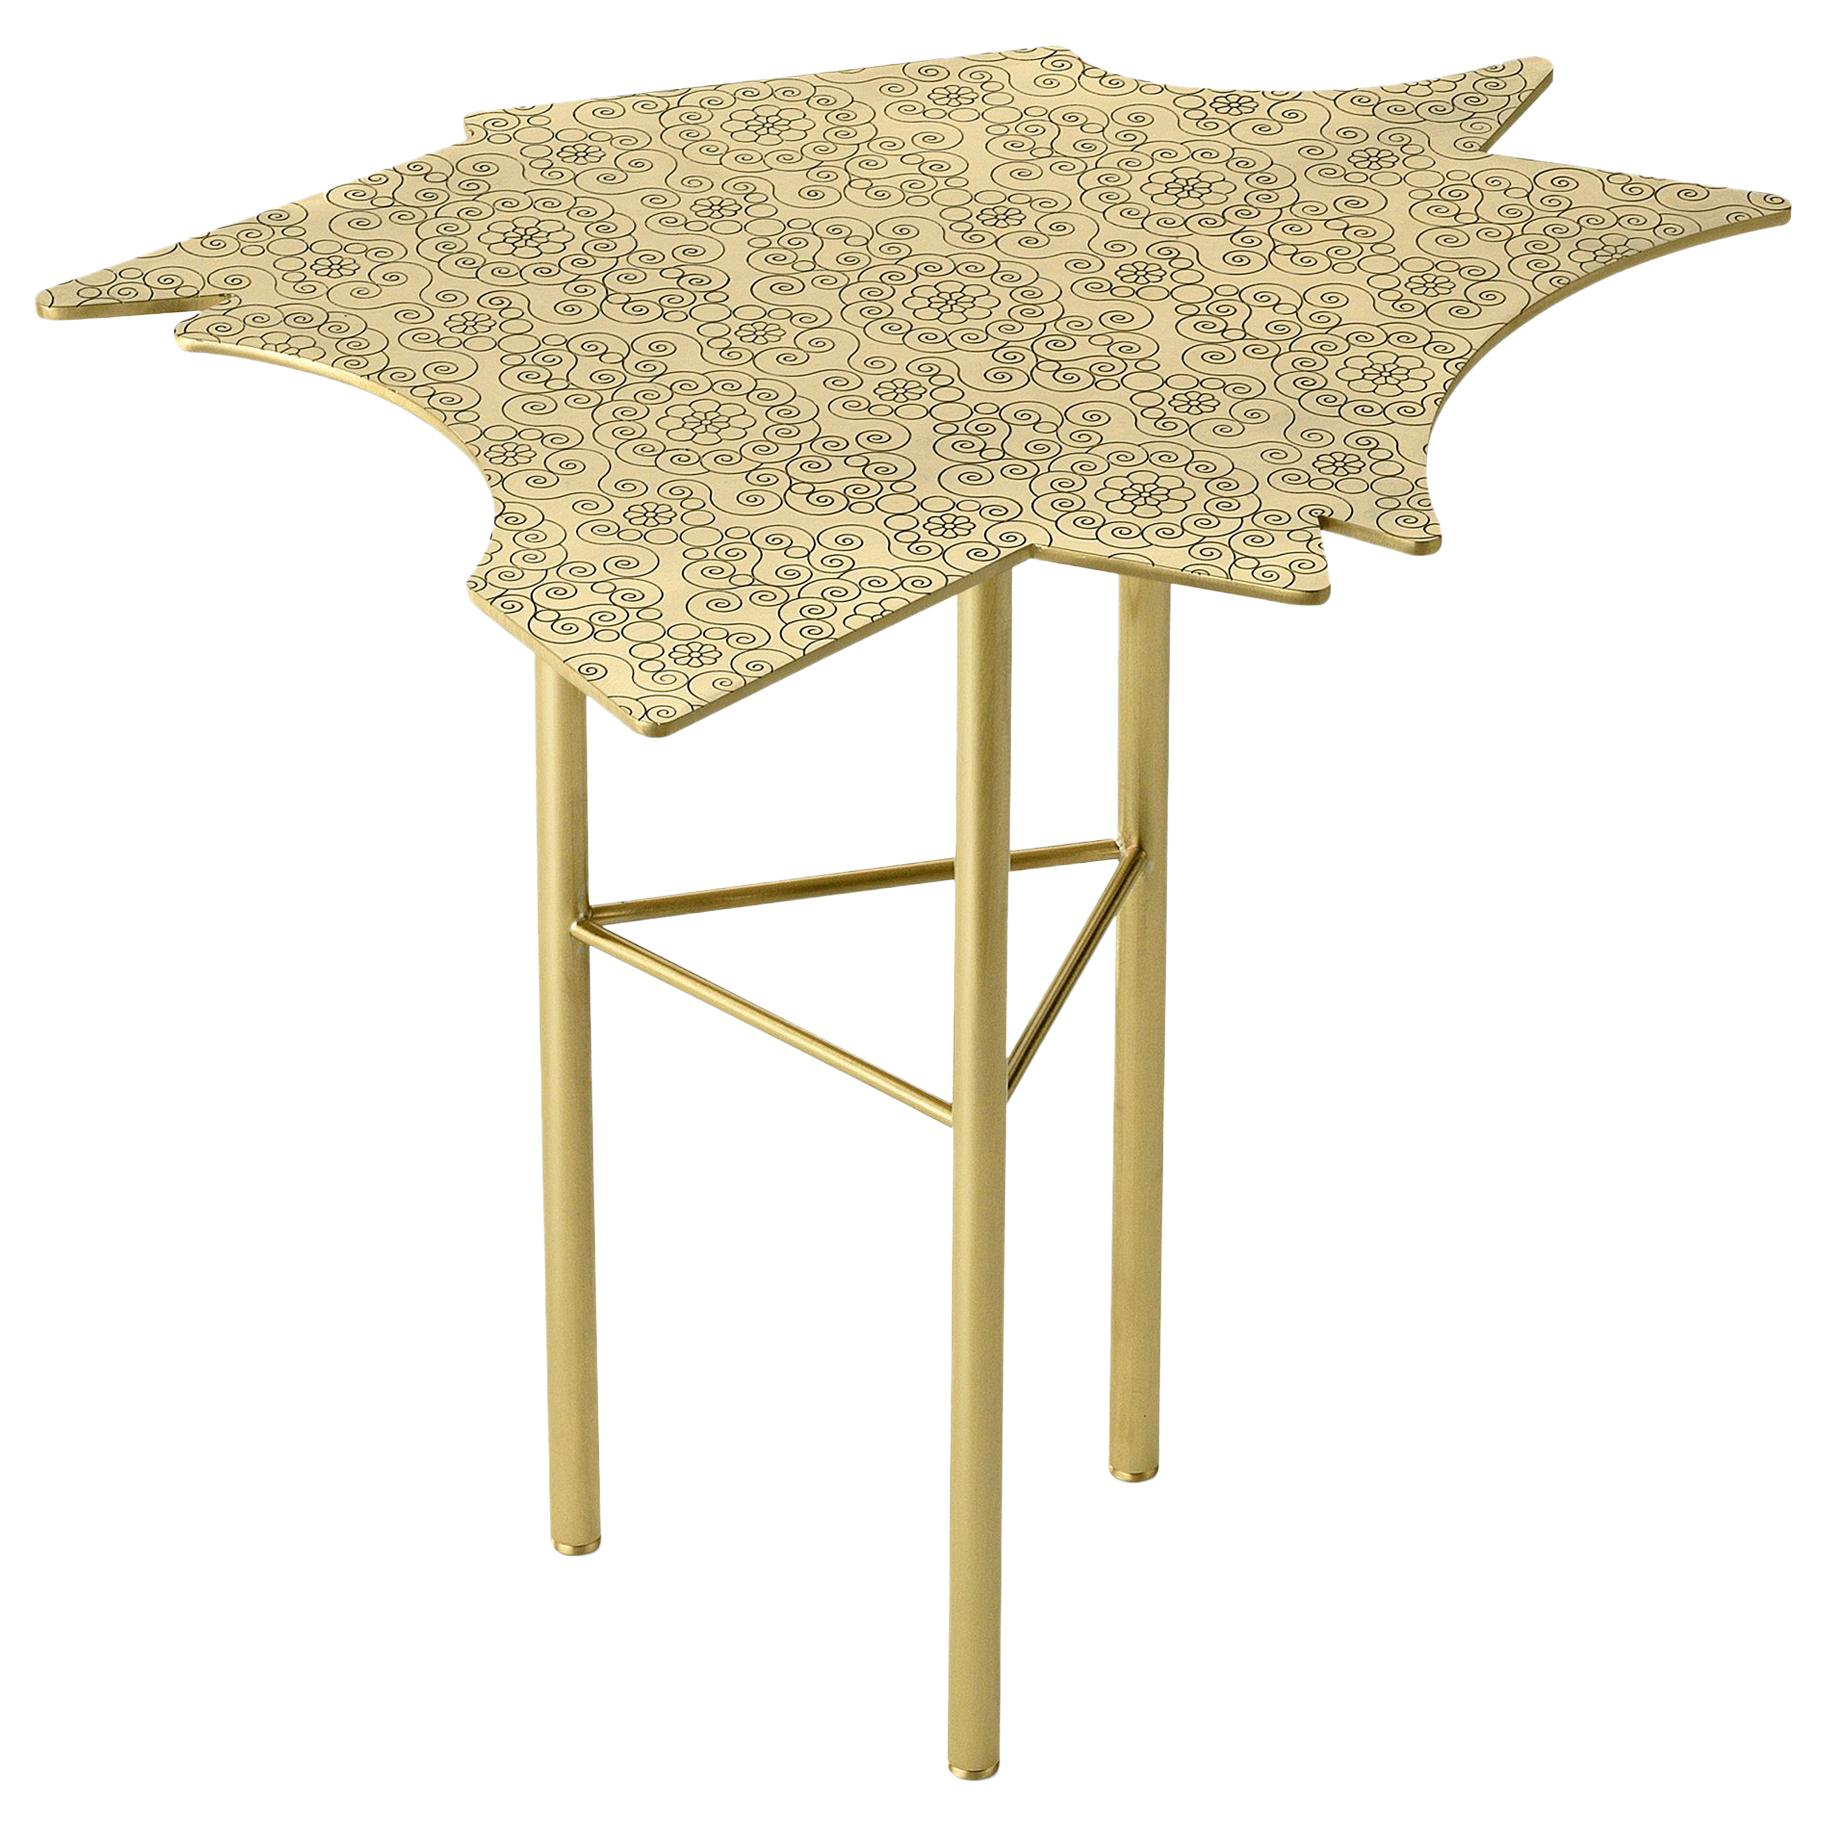 Ghidini 1961 Le Ninfee Middle Side Table in Brass by Alessandro Mendini